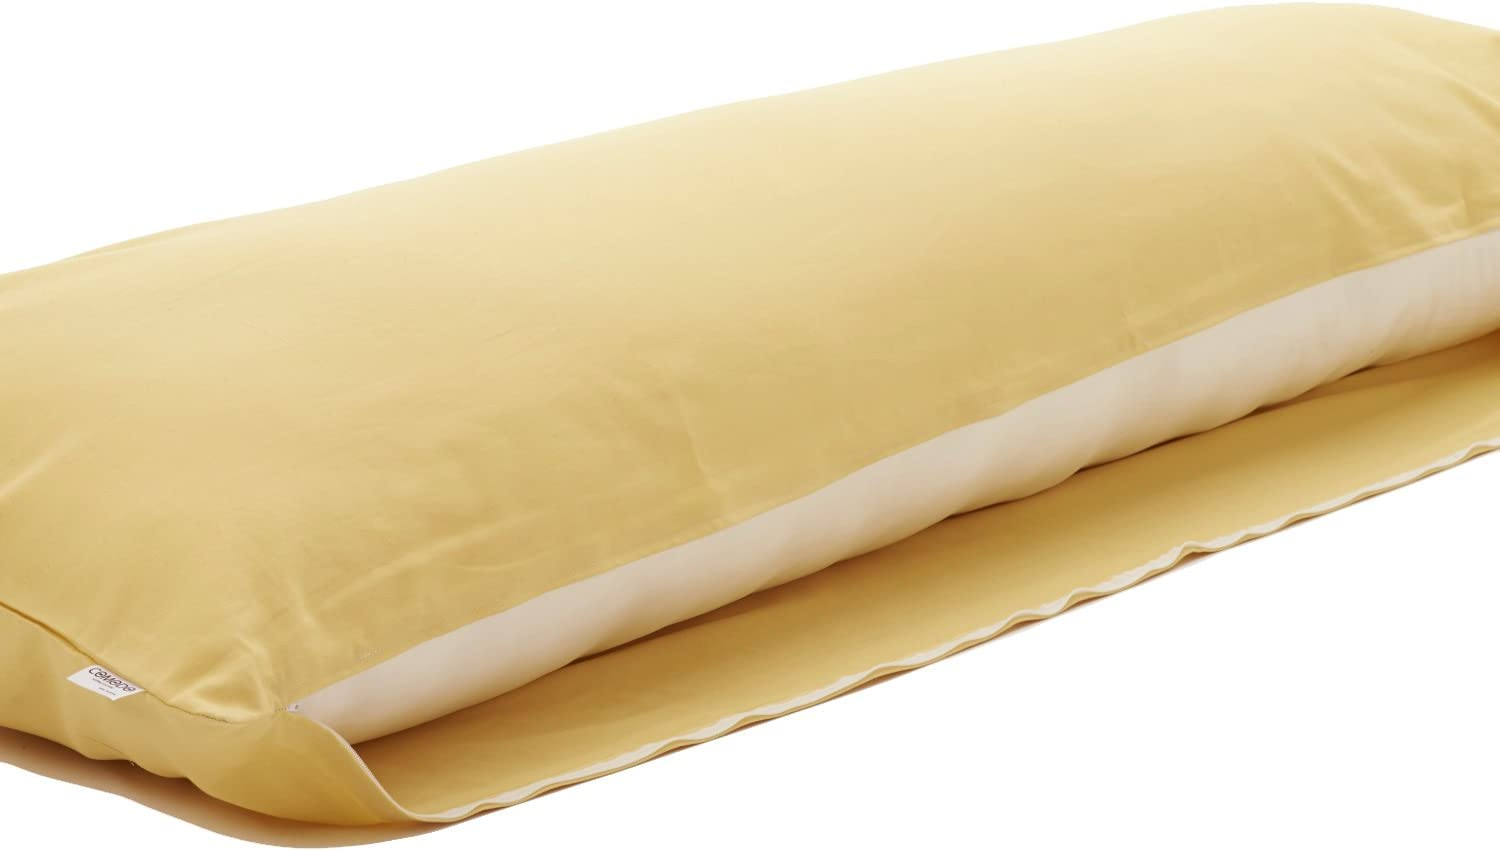 CMC9000R Body Pillow Cover With Zipper